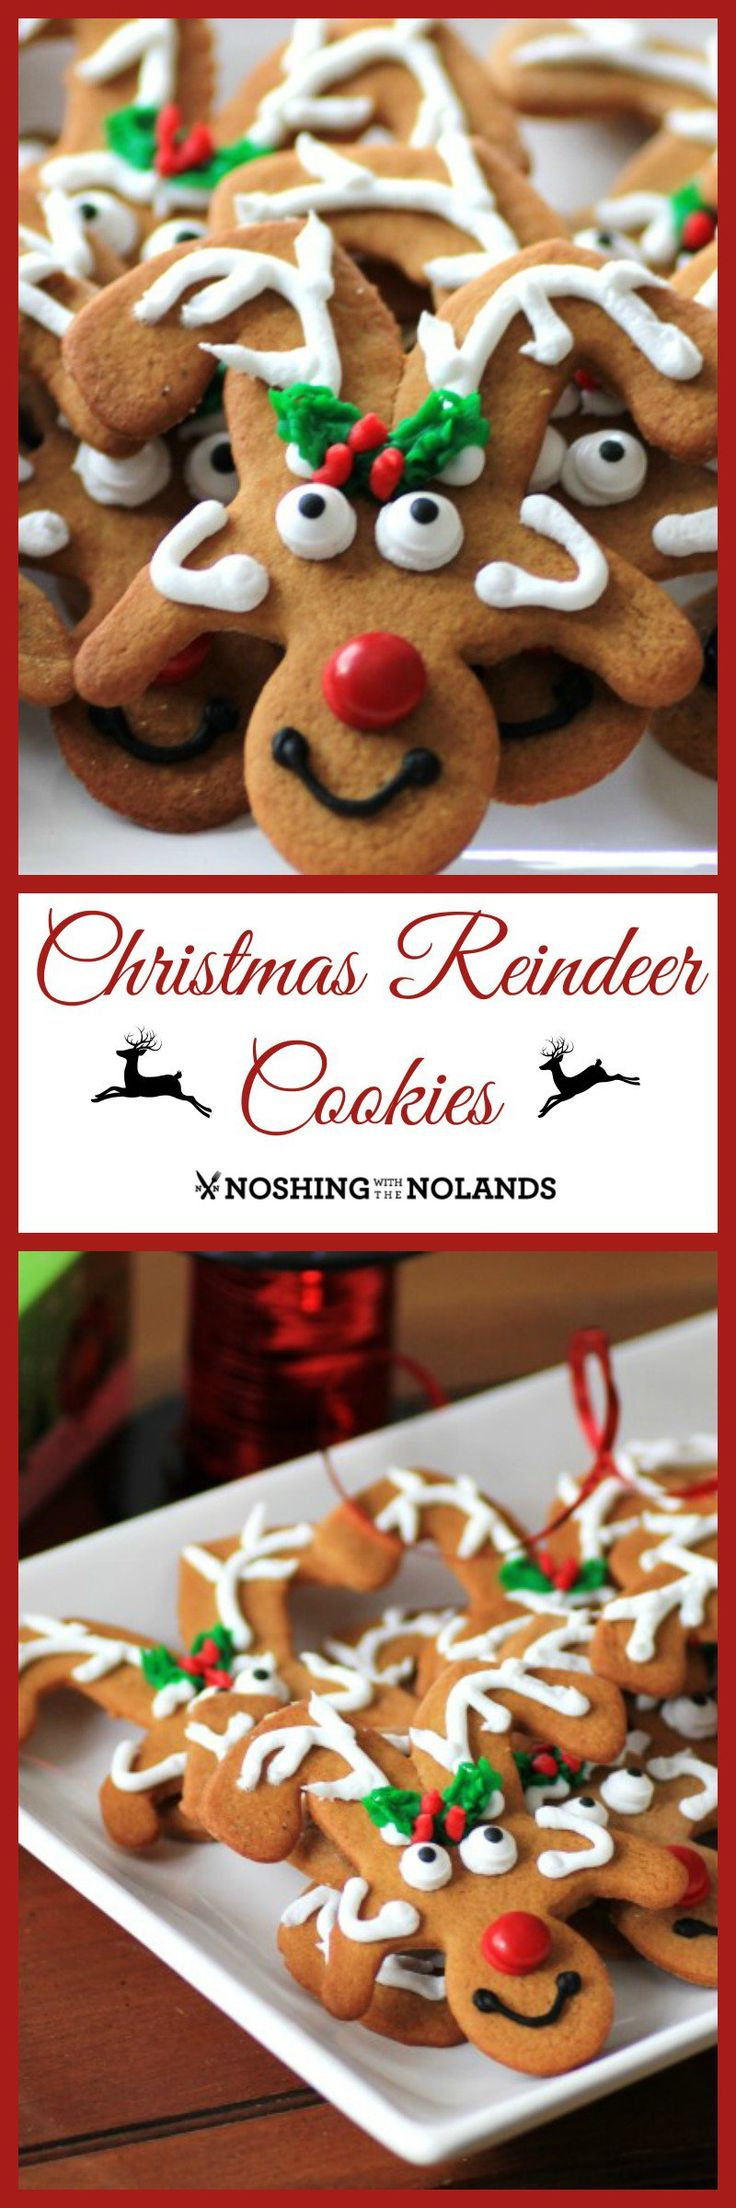 Christmas Reindeer Cookies by Noshing With The Nolands are a fun Christmas cookie that people love to receive!